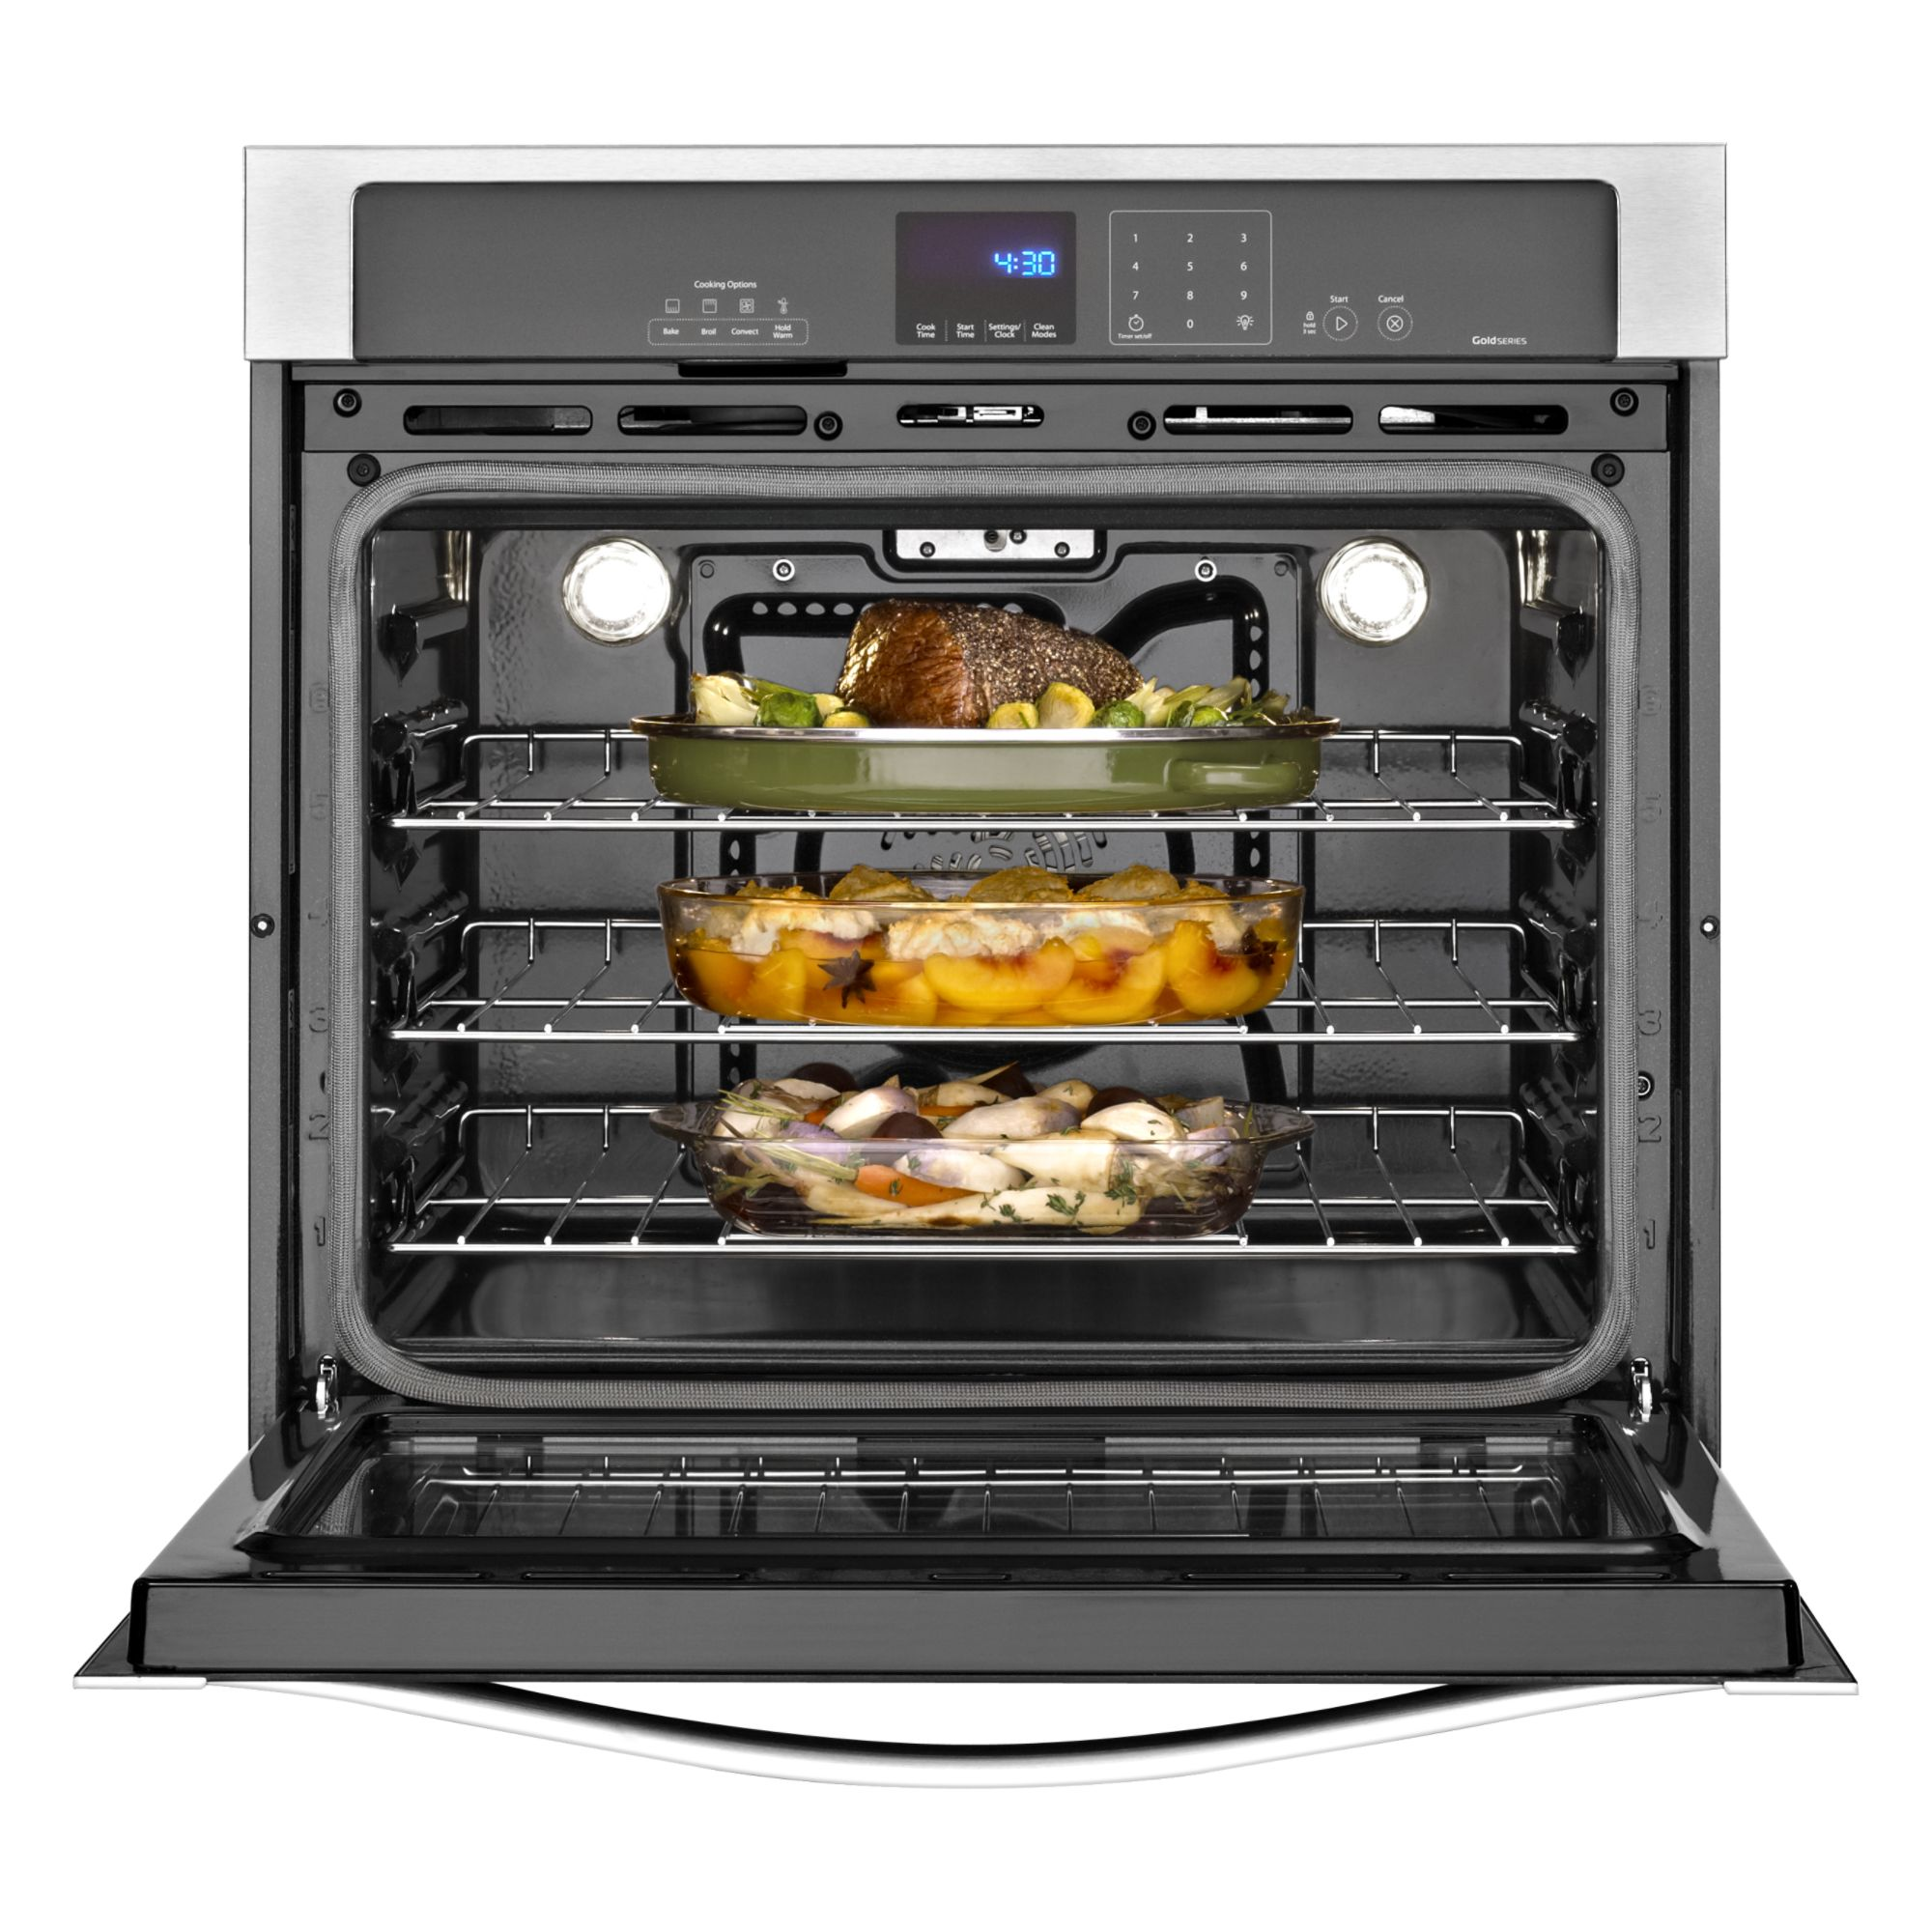 "Whirlpool Gold 27"" Electric Wall Oven w/ TimeSavor™ Ultra True Convection - Stainless Steel"